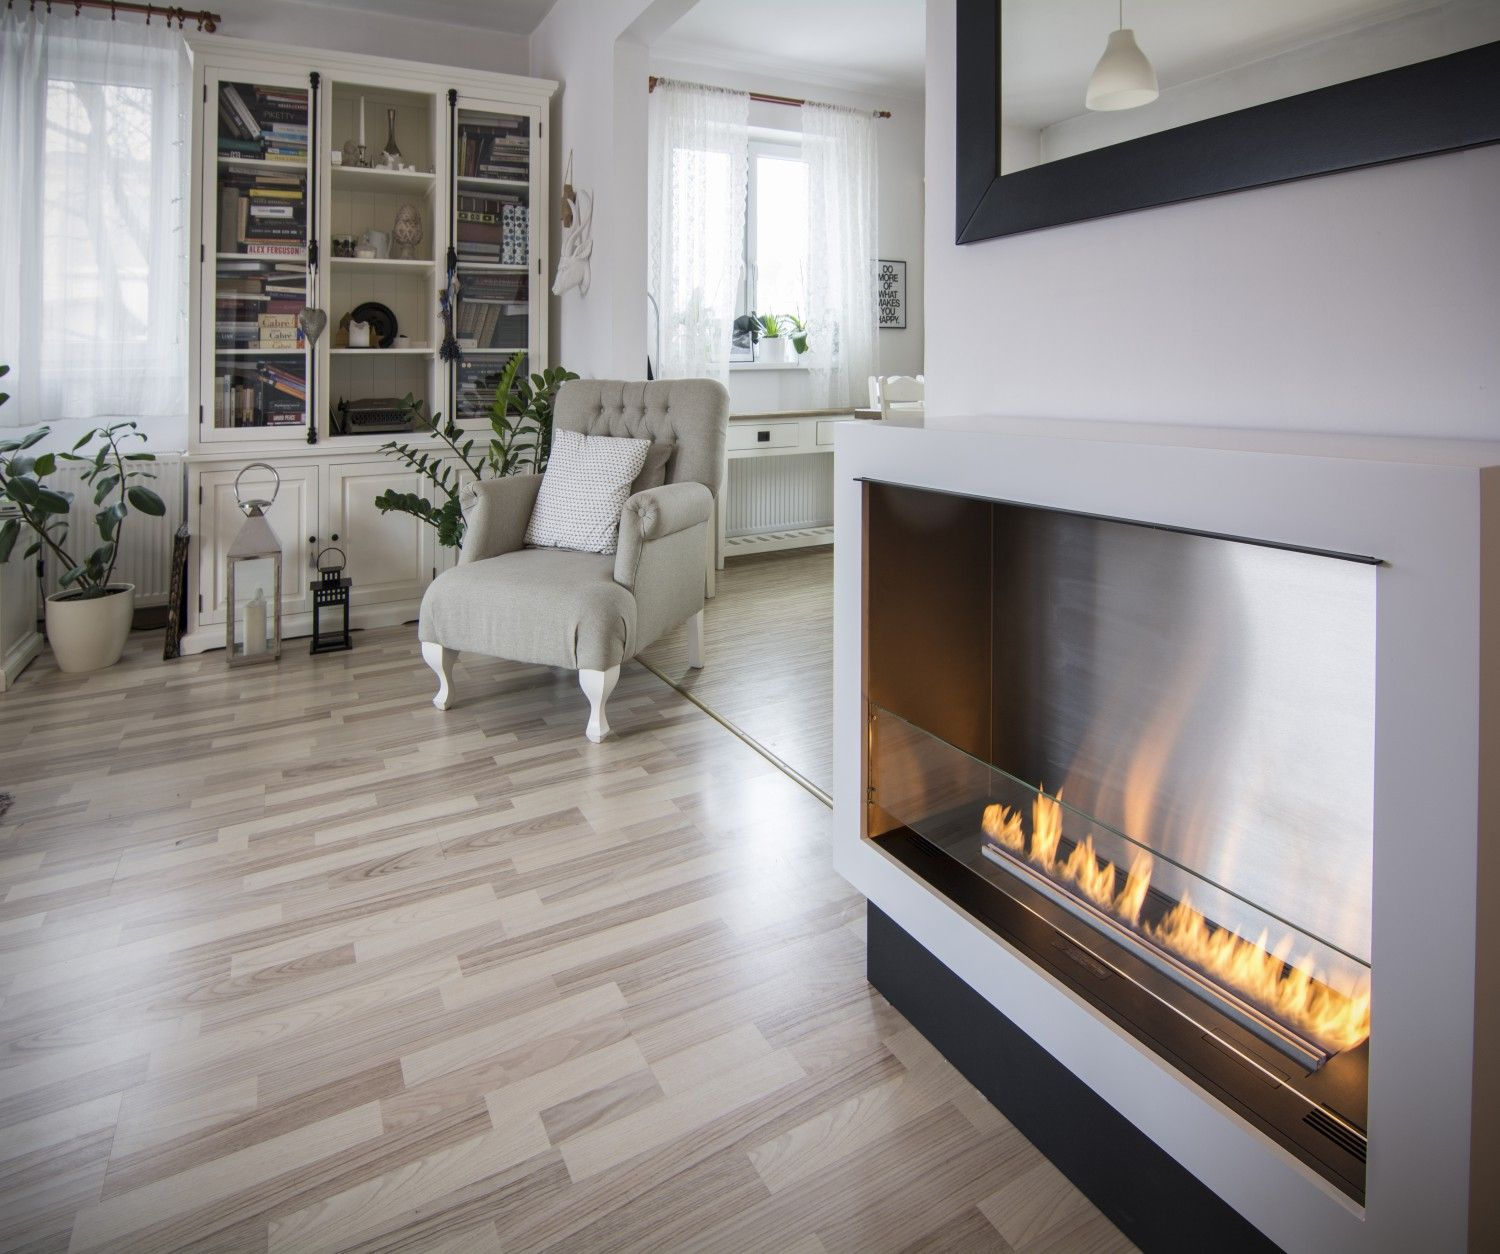 This Fireplace Fits Beautifully In Both Small And Large Rooms